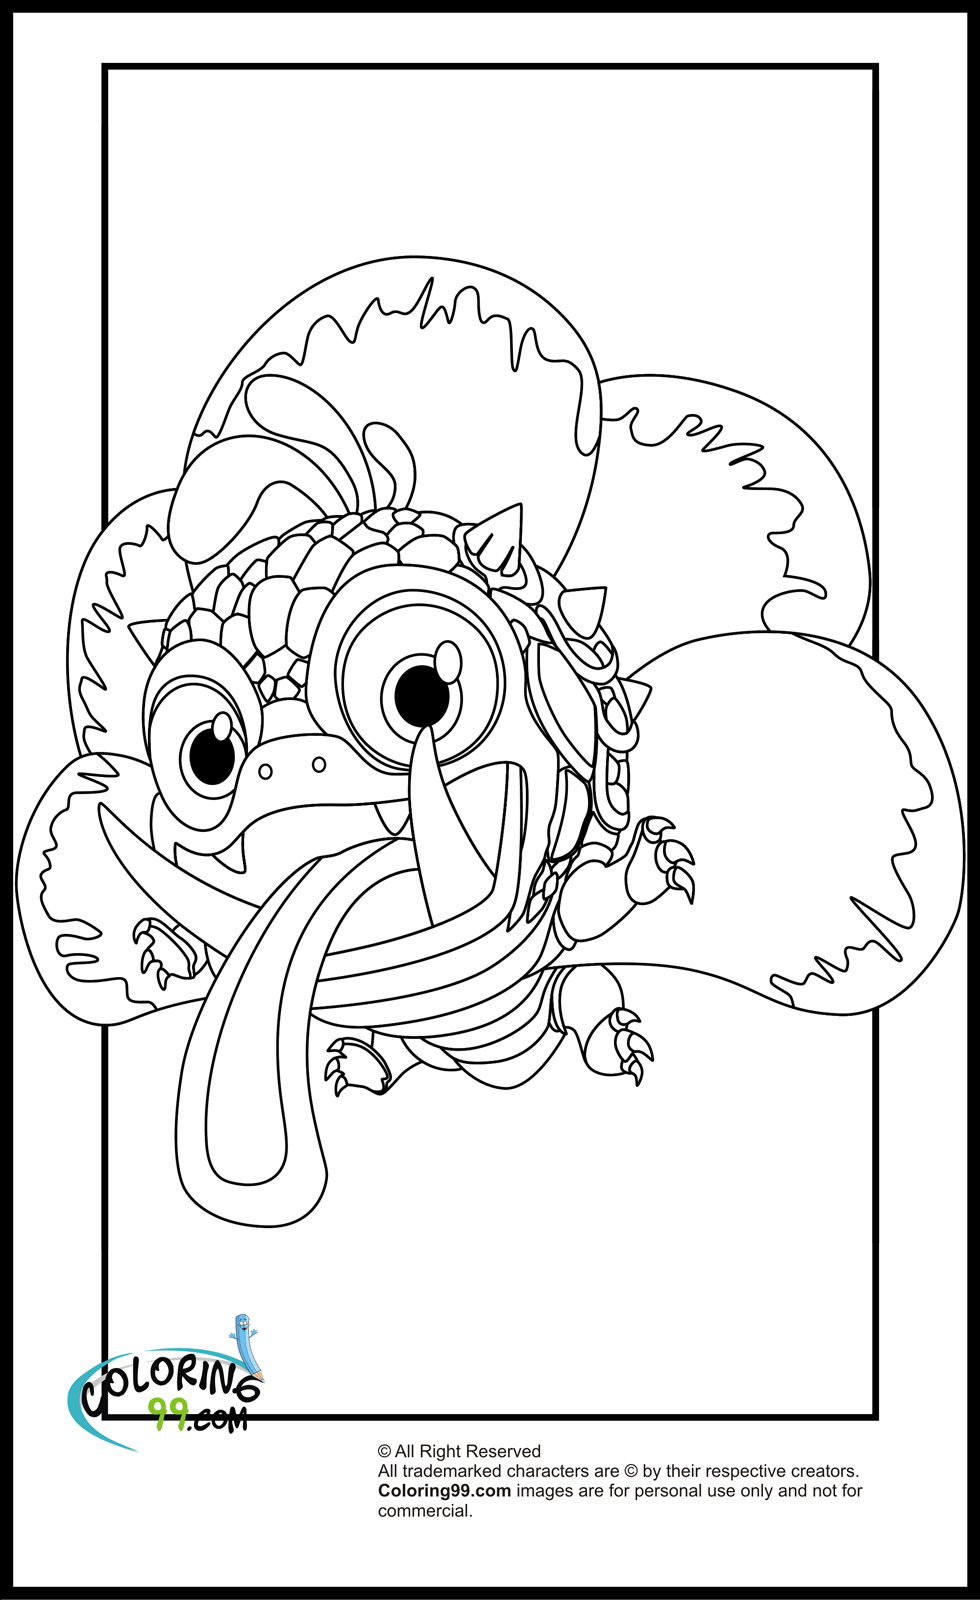 Skylanders Magic Element Coloring Pages | Team colors